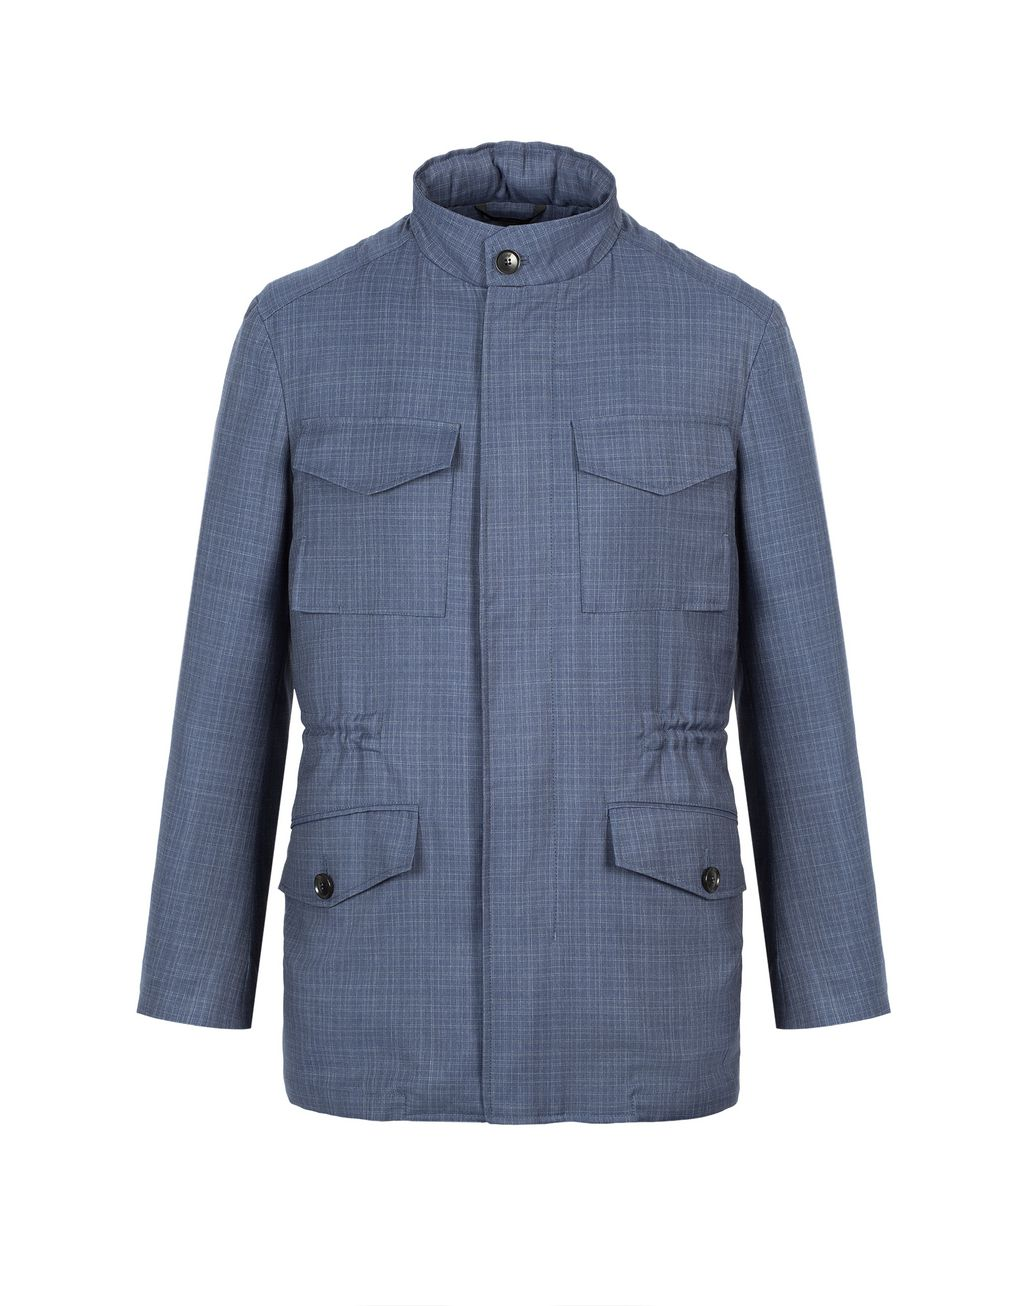 BRIONI Navy-Blue Check Trans-Seasonal Field Jacket Outerwear [*** pickupInStoreShippingNotGuaranteed_info ***] f